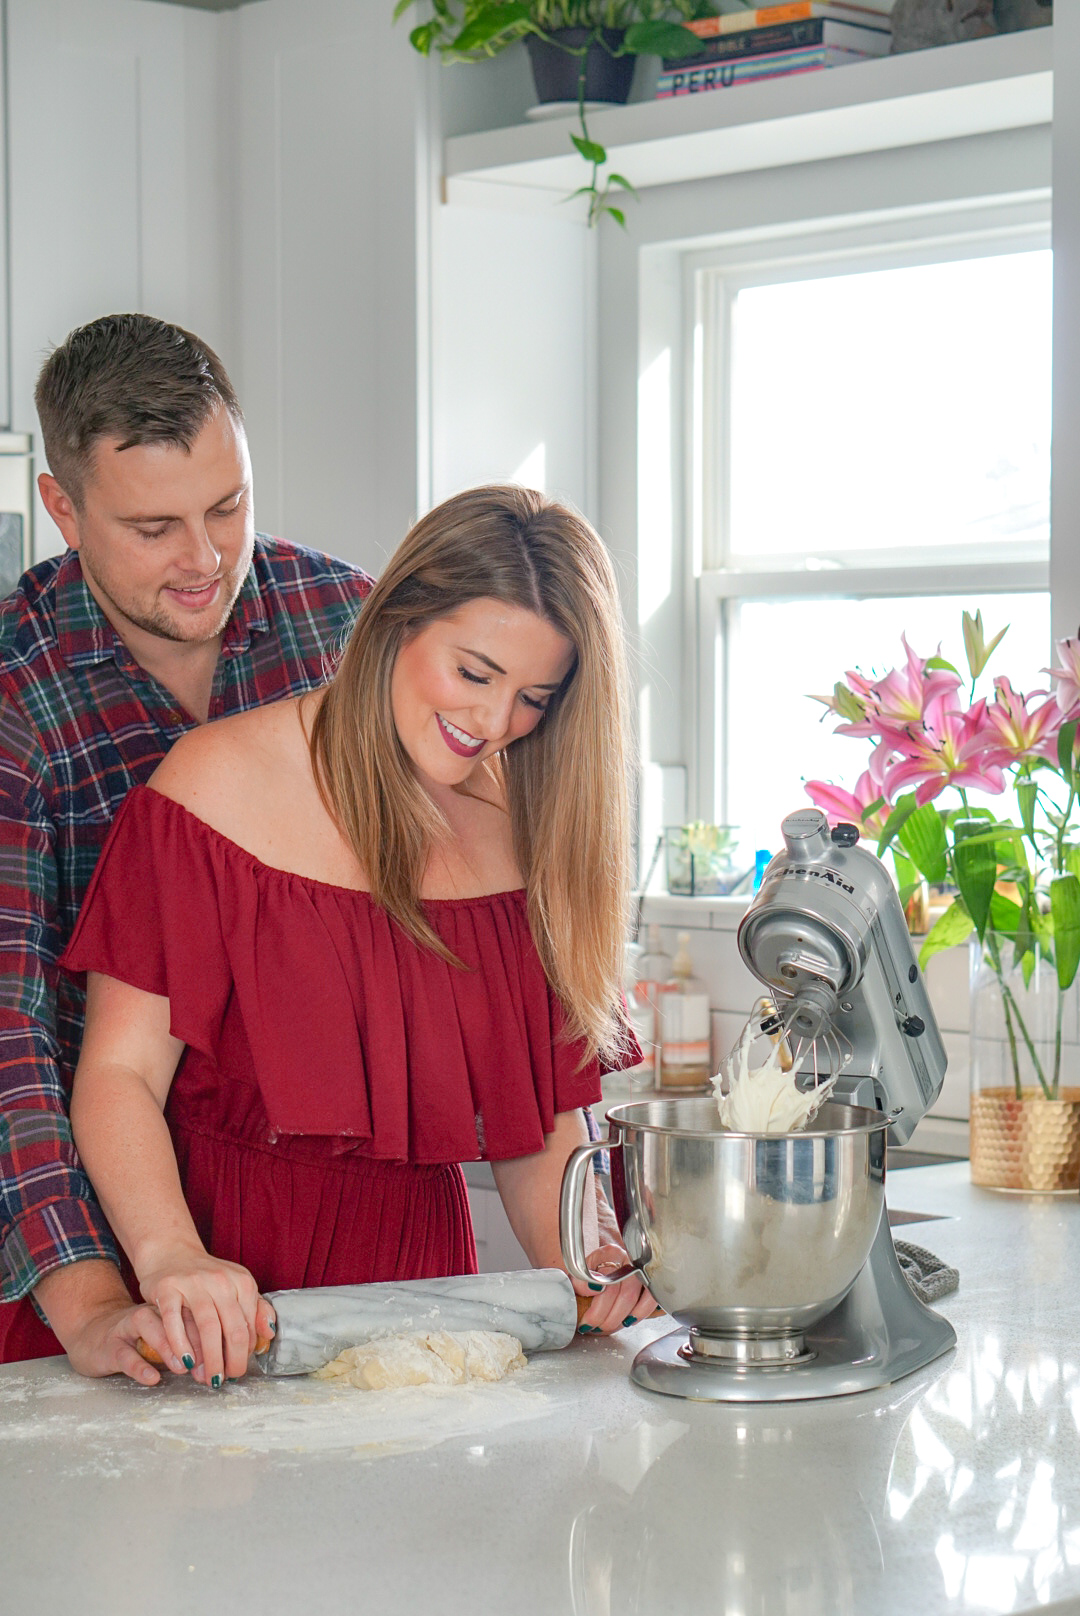 Cooking Date Night - List of Romantic Date Ideas